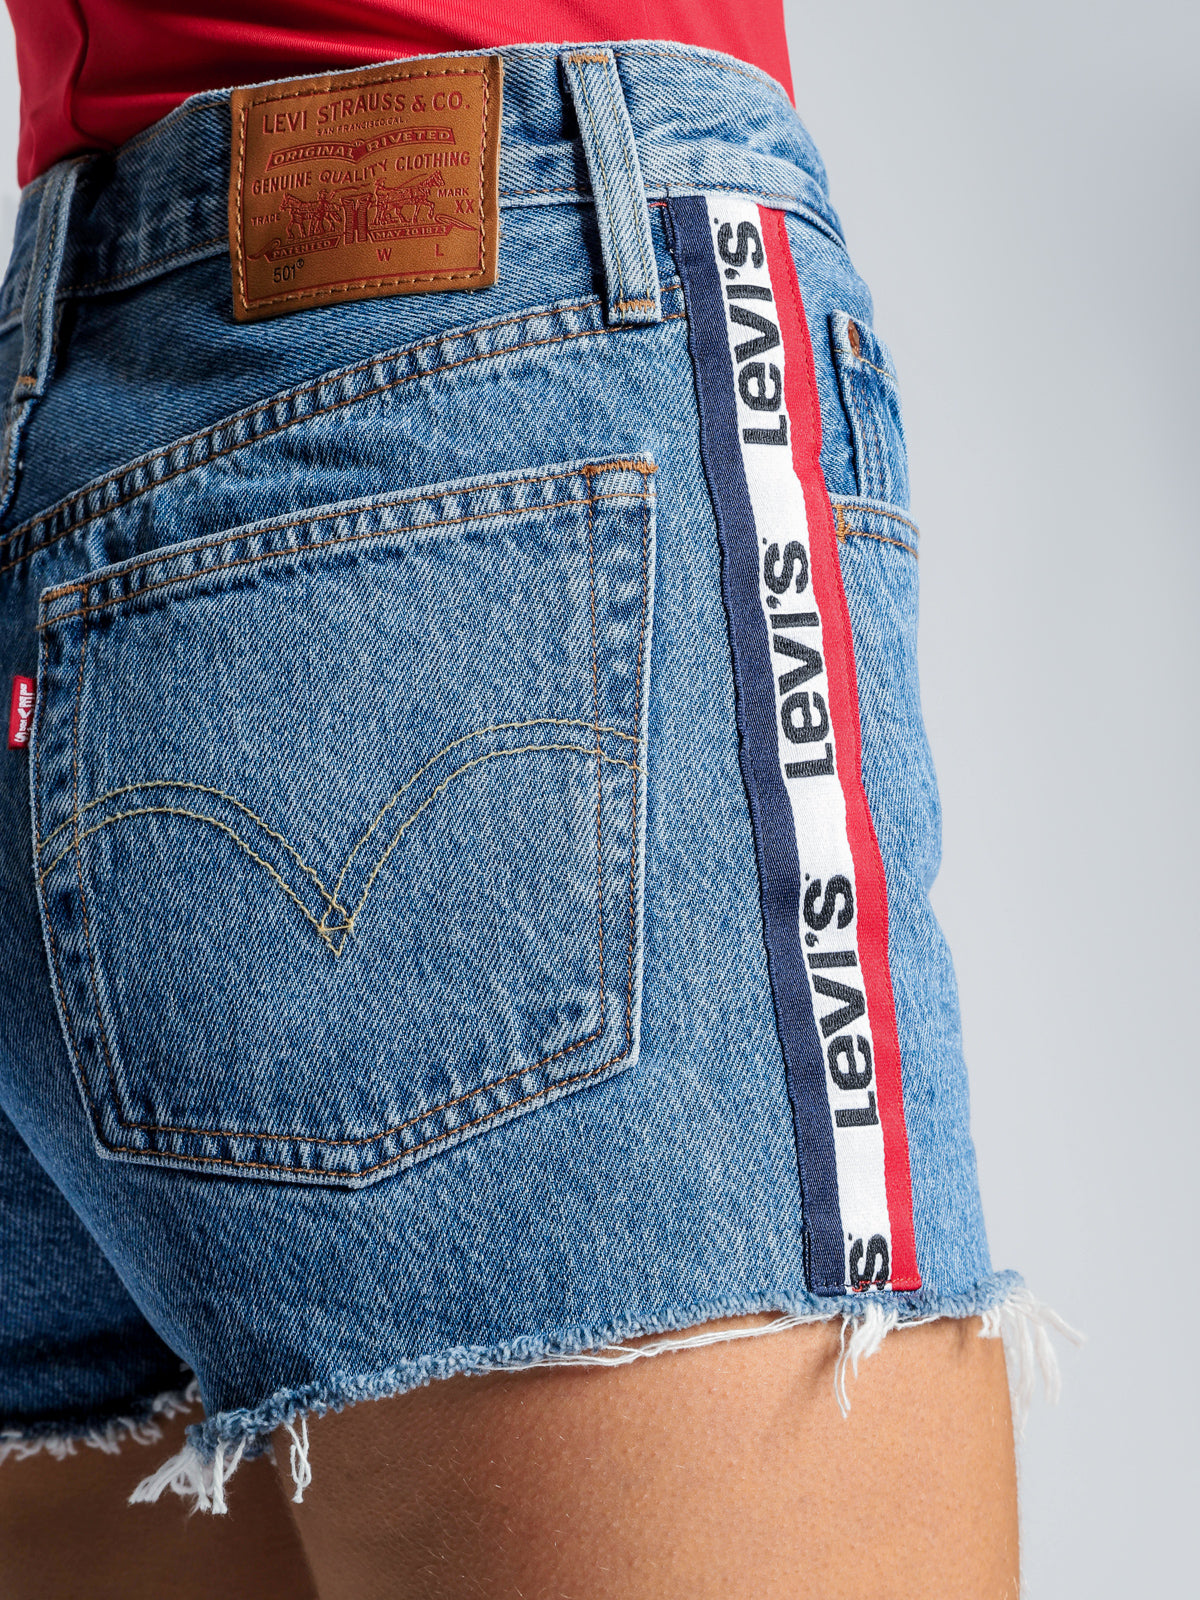 501 High Rise Shorts in Spectator Sport Denim